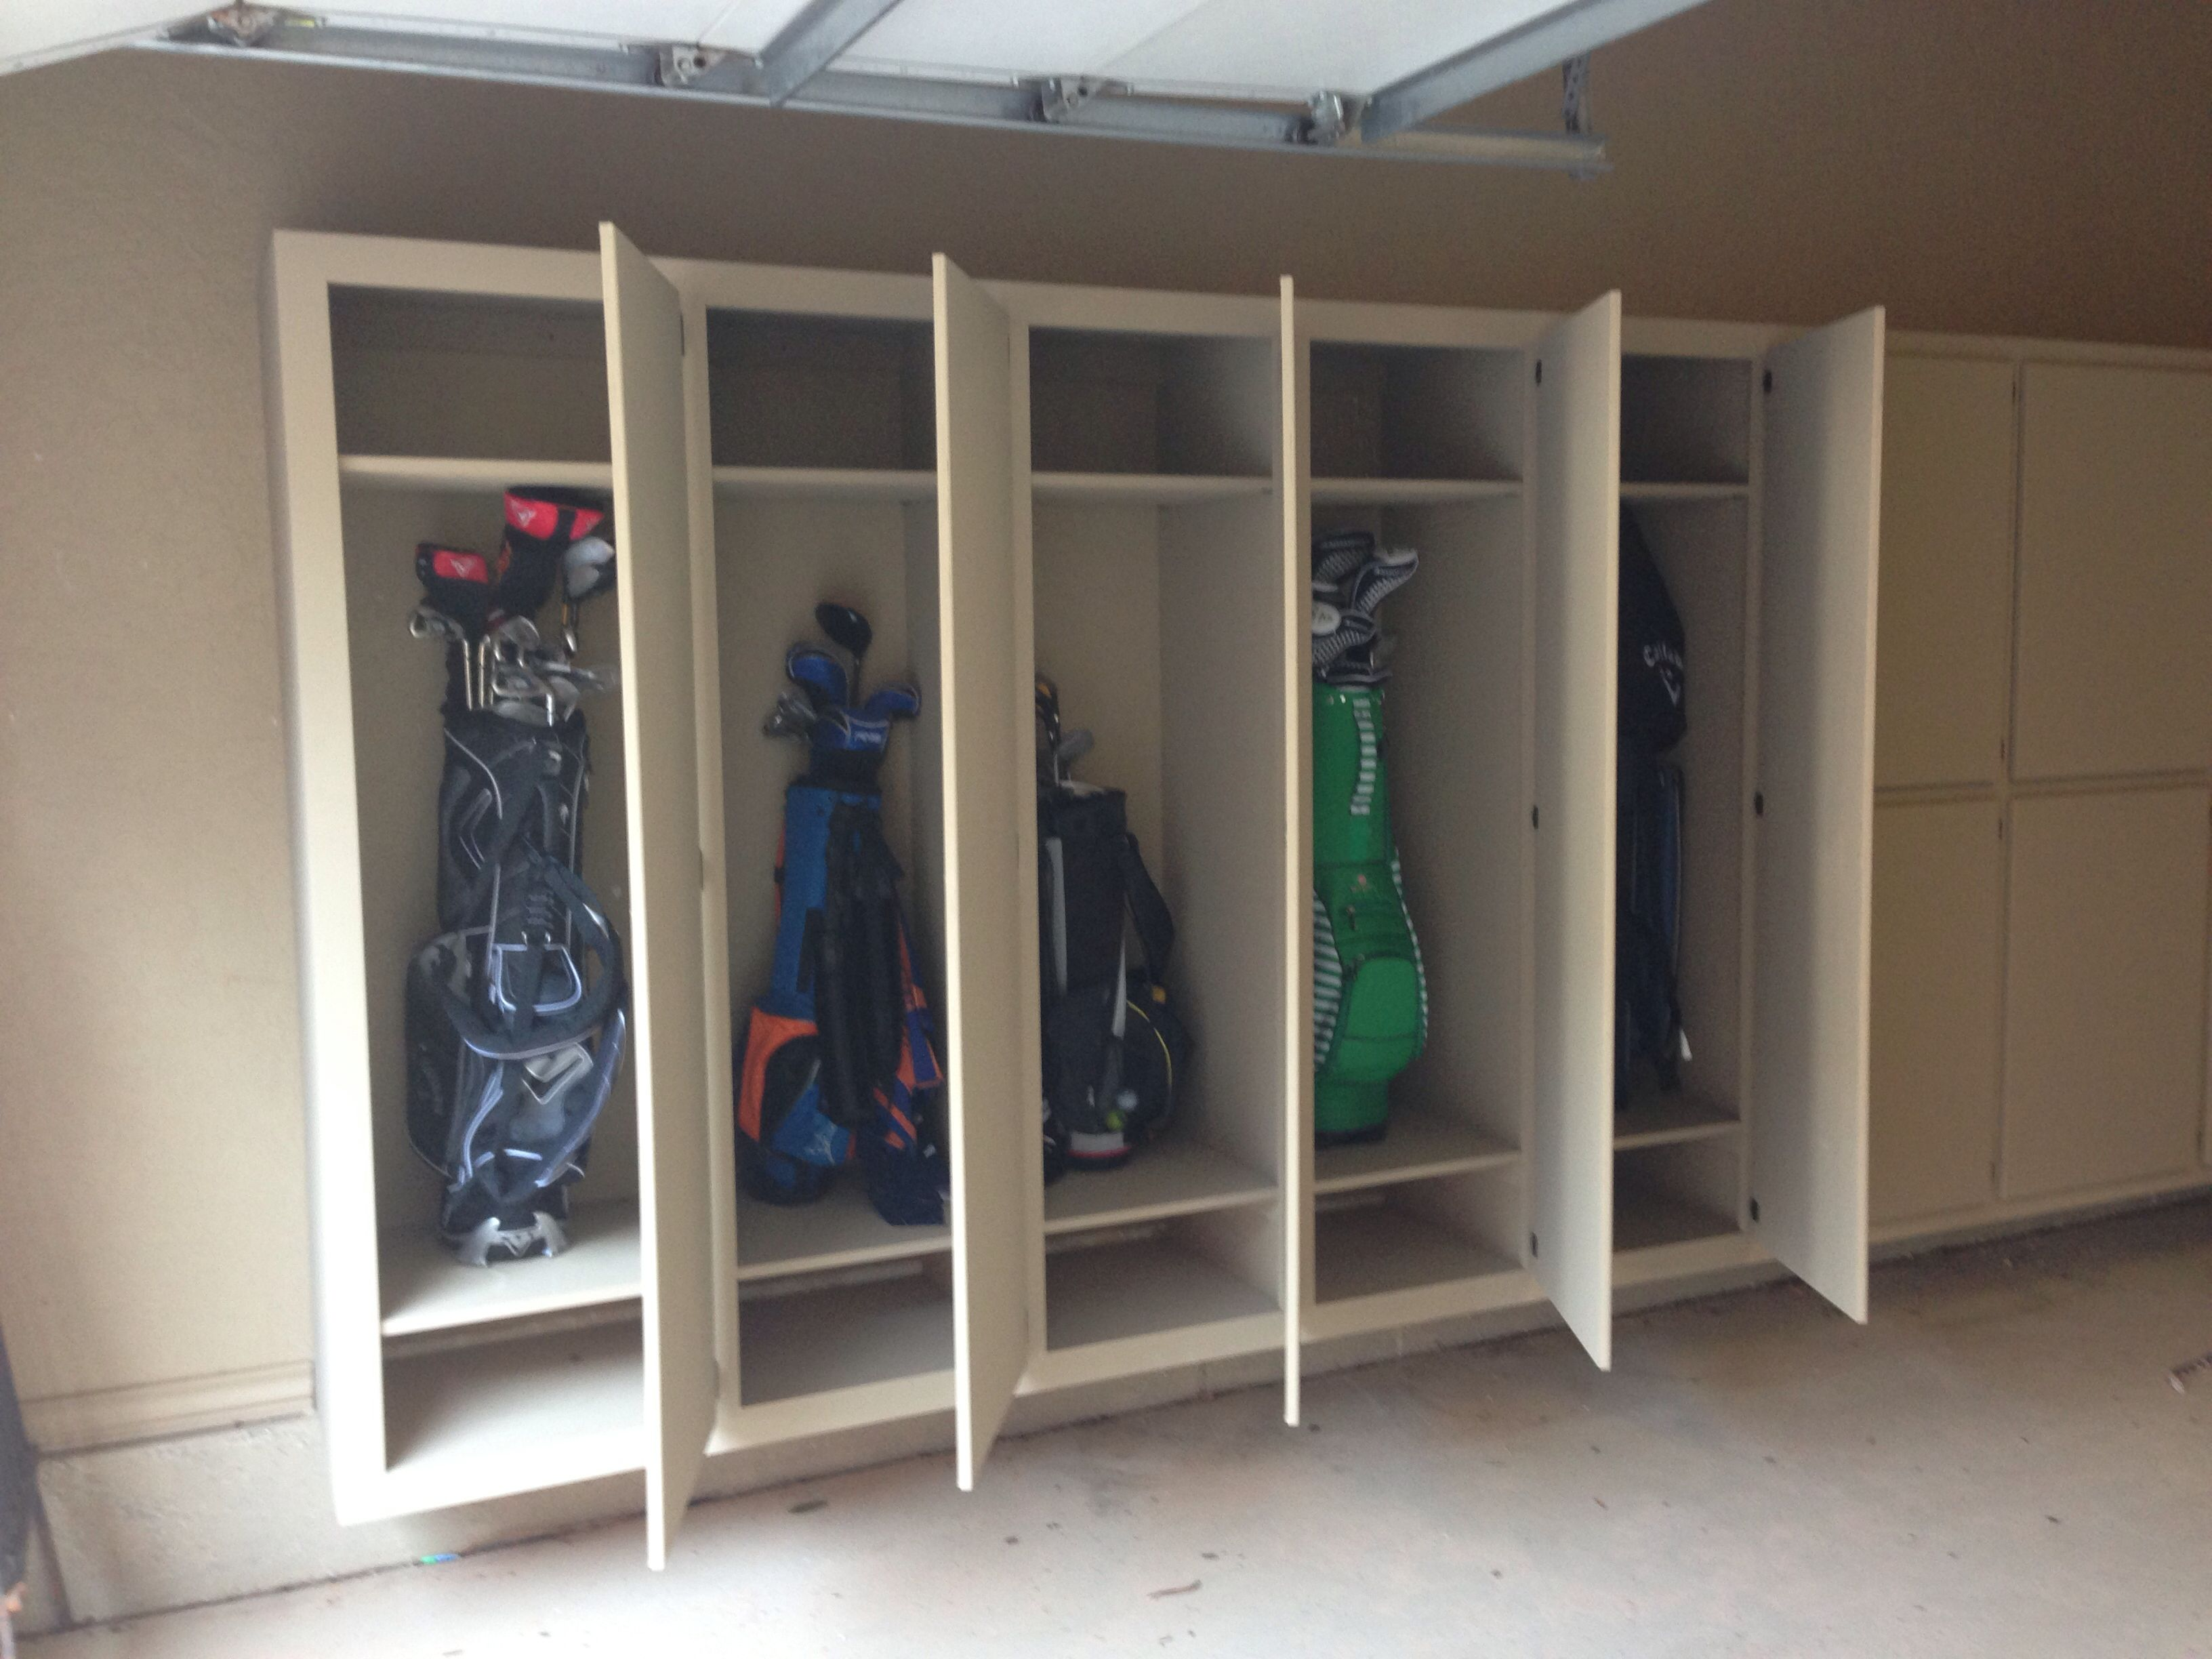 Garage Racks Austin Happy Little Golf Clubs All Tucked Away In Garage Cabinets Yay